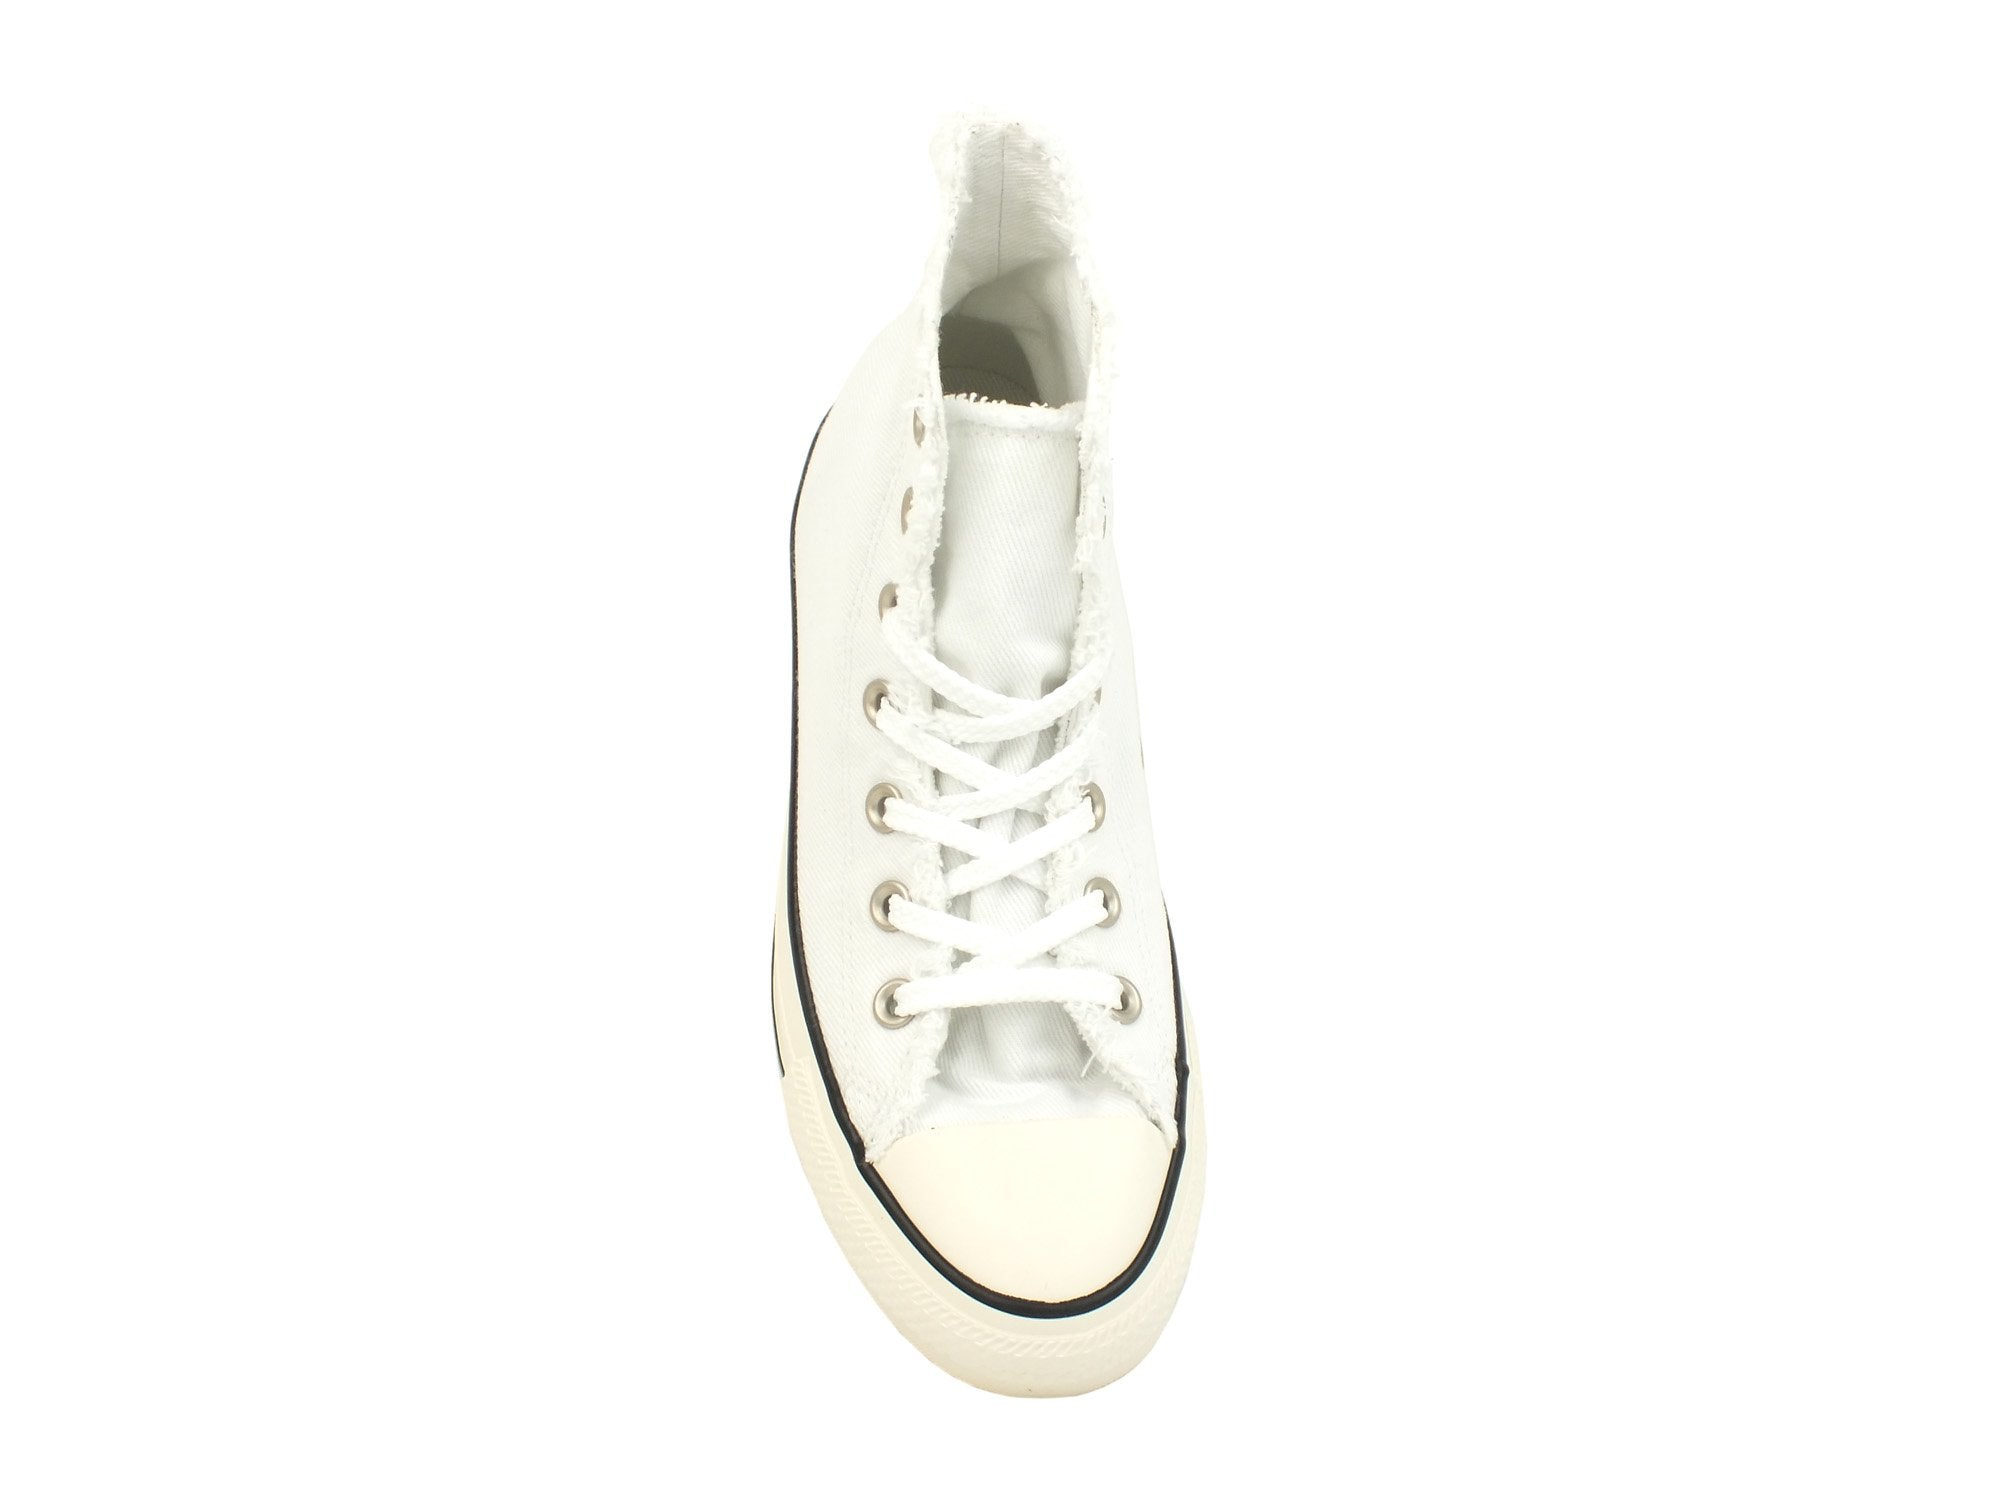 CONVERSE C.T. All Star Hi White Marshmallow 161016C